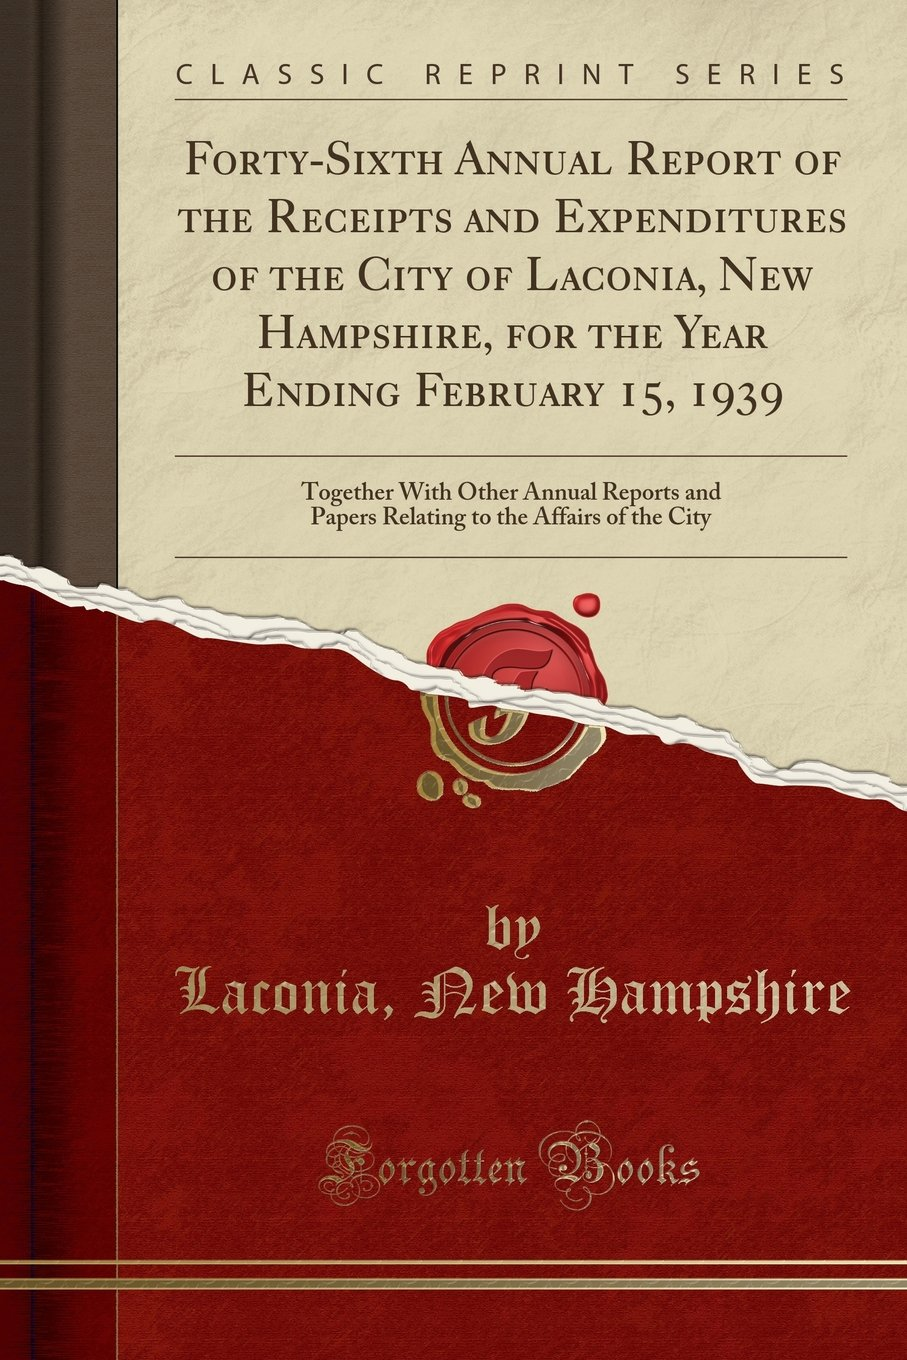 Forty-Sixth Annual Report of the Receipts and Expenditures of the City of Laconia, New Hampshire, for the Year Ending February 15, 1939: Together With ... to the Affairs of the City (Classic Reprint) pdf epub